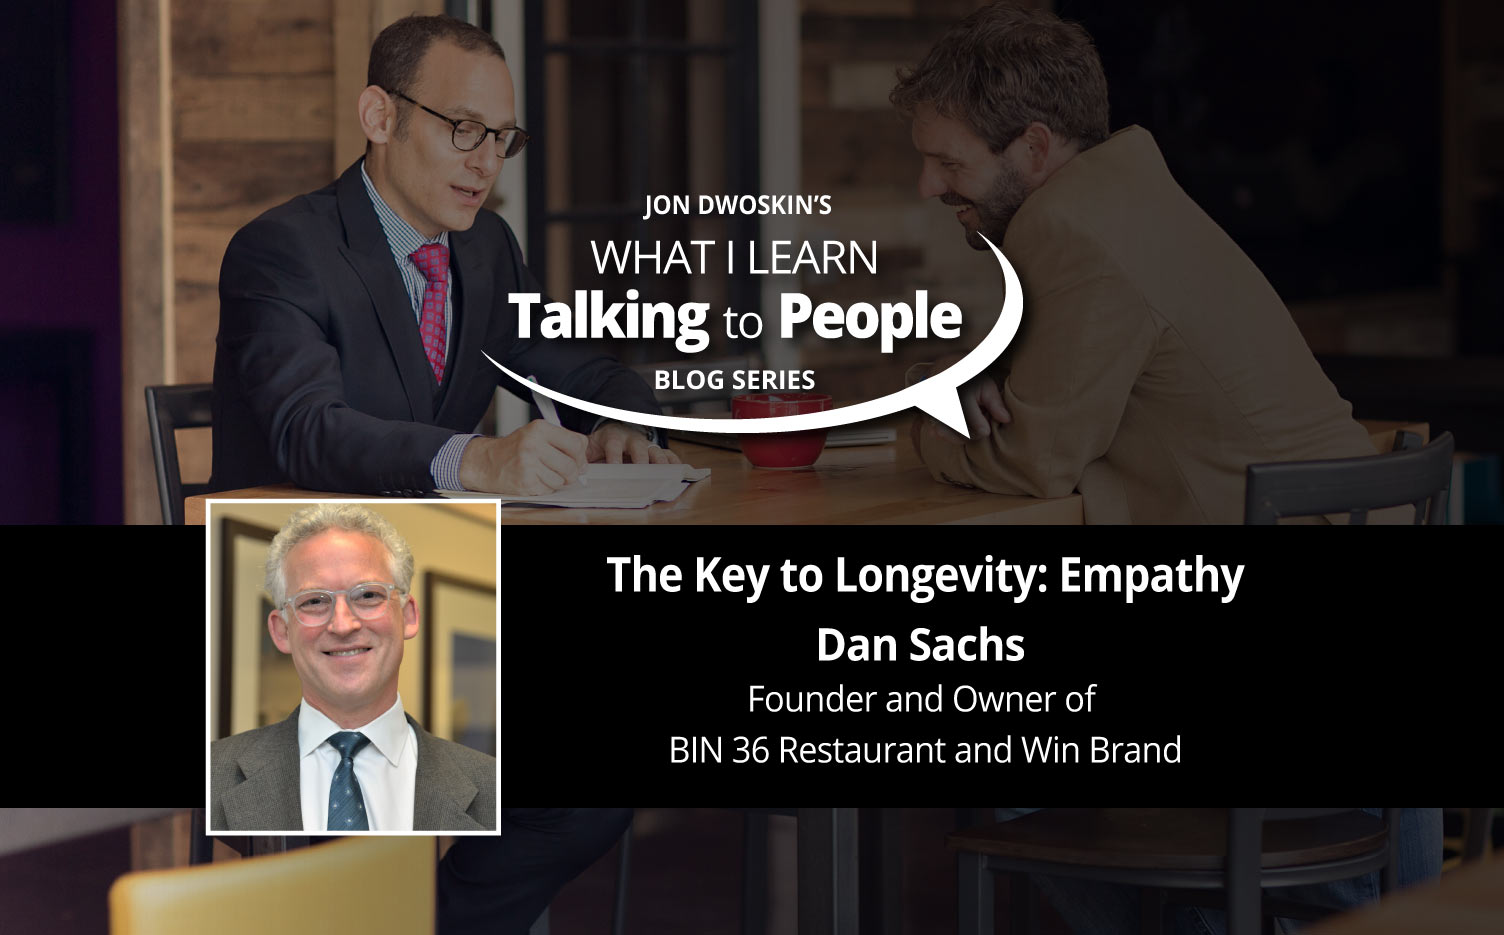 Jon Dwoskin's What I learn from Talking to People Blog: Dan Sachs